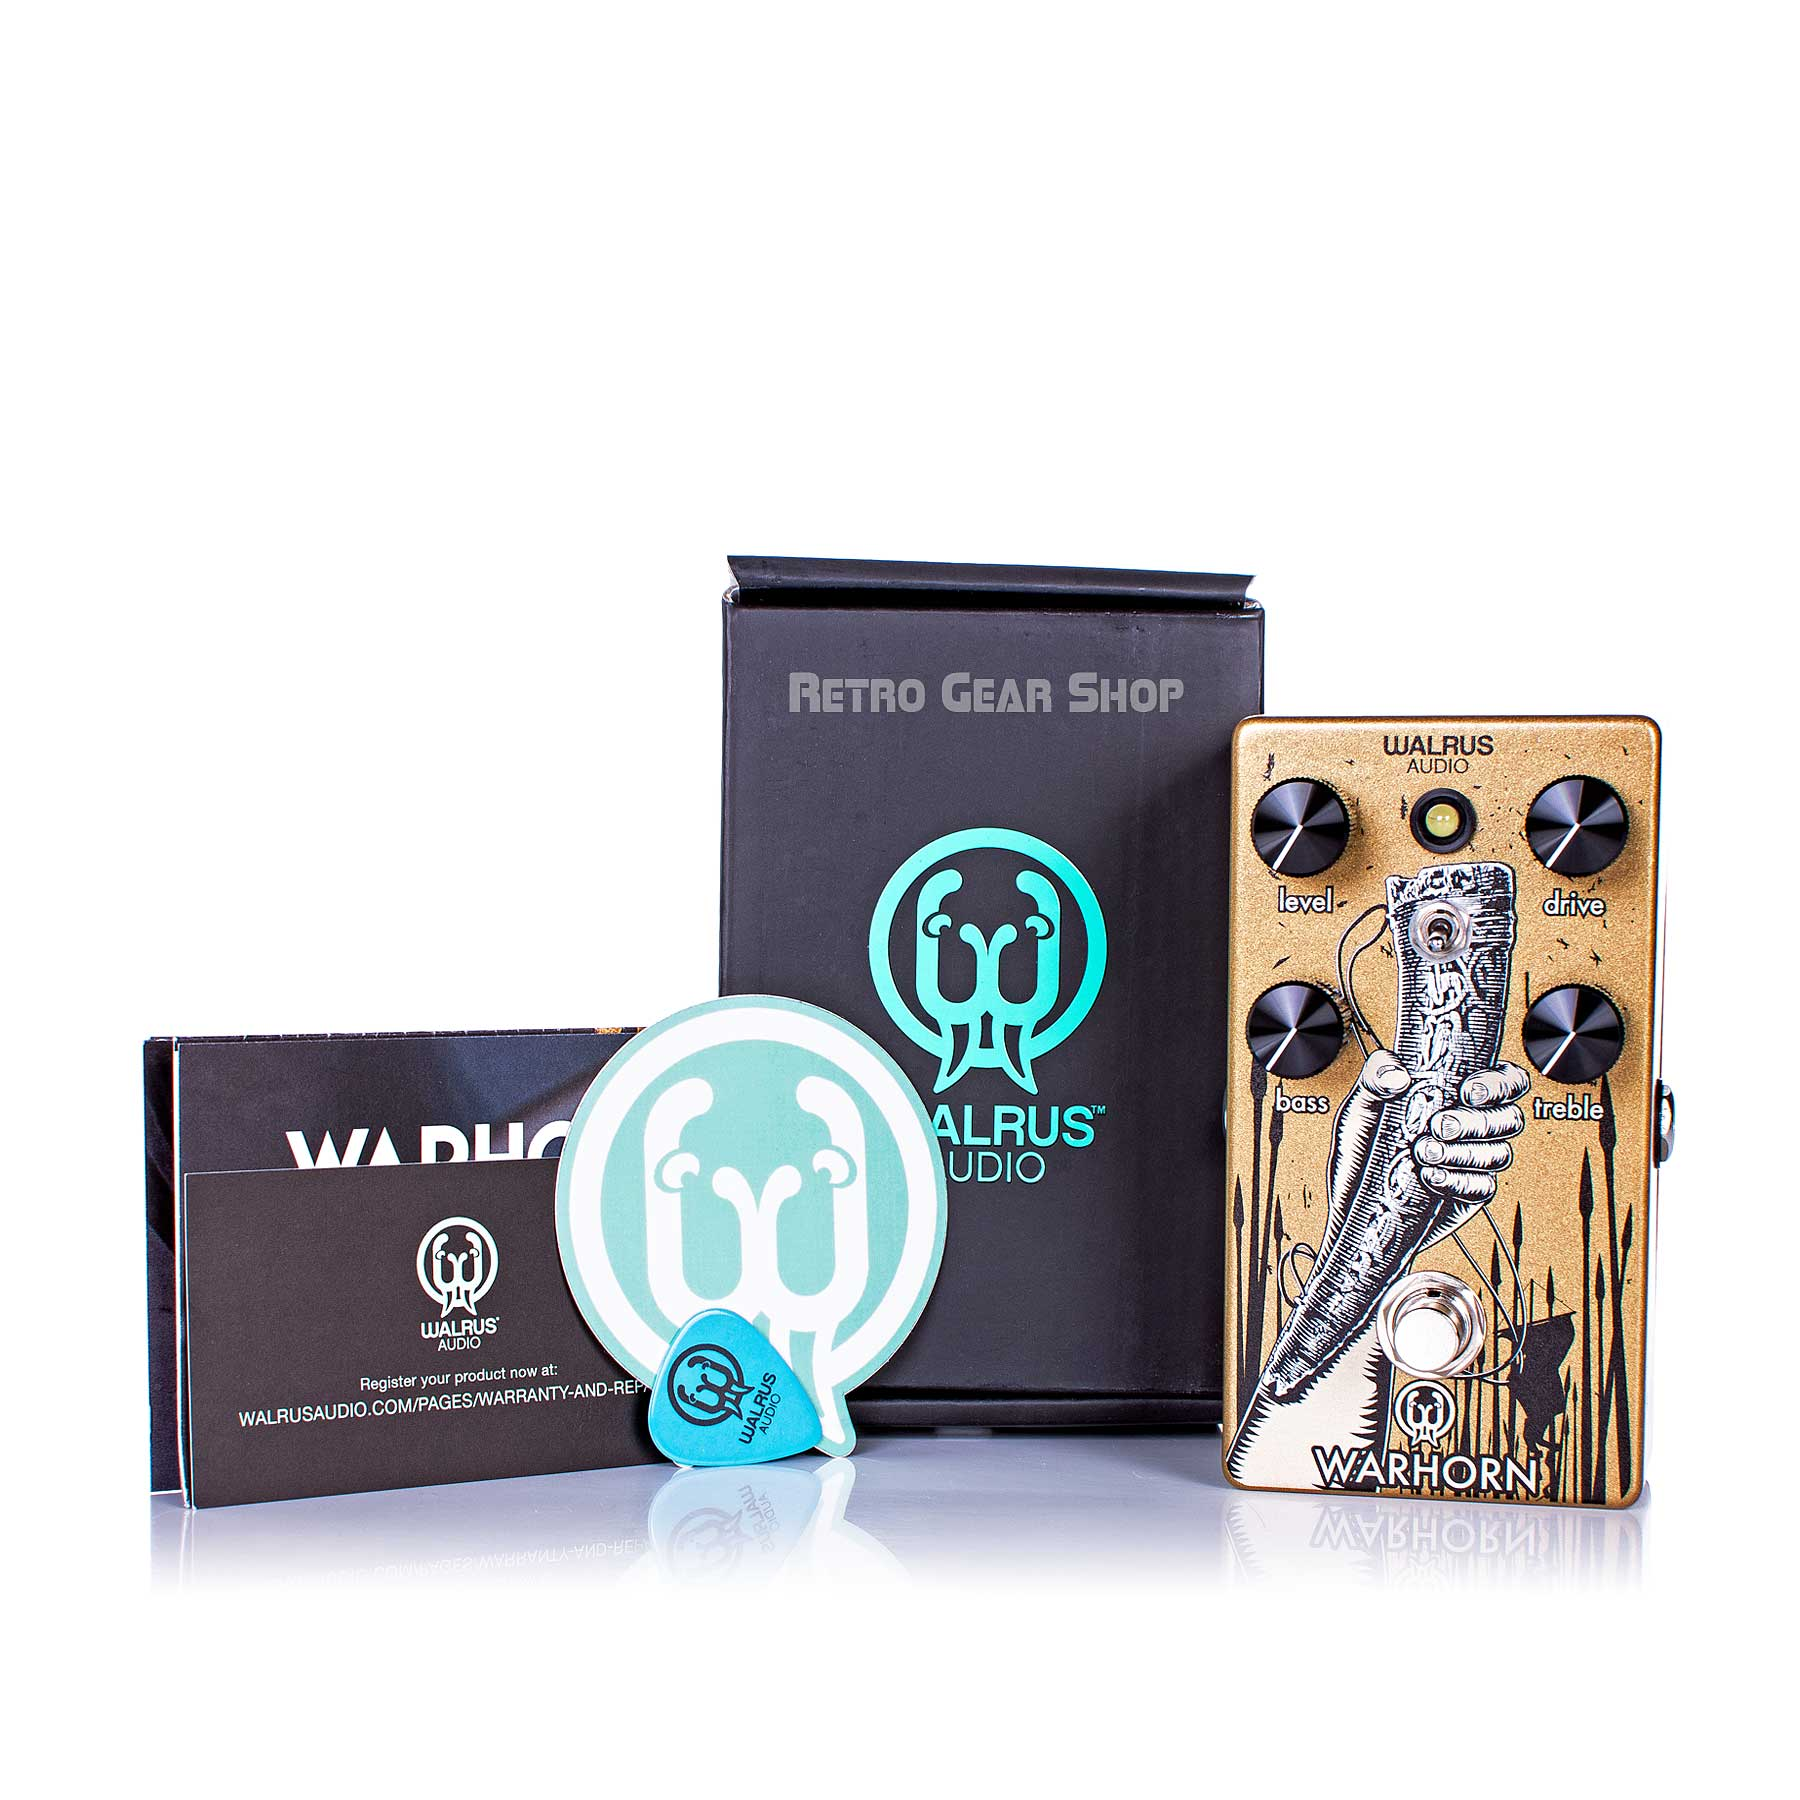 Walrus Audio Warhorn Box Manual Extras